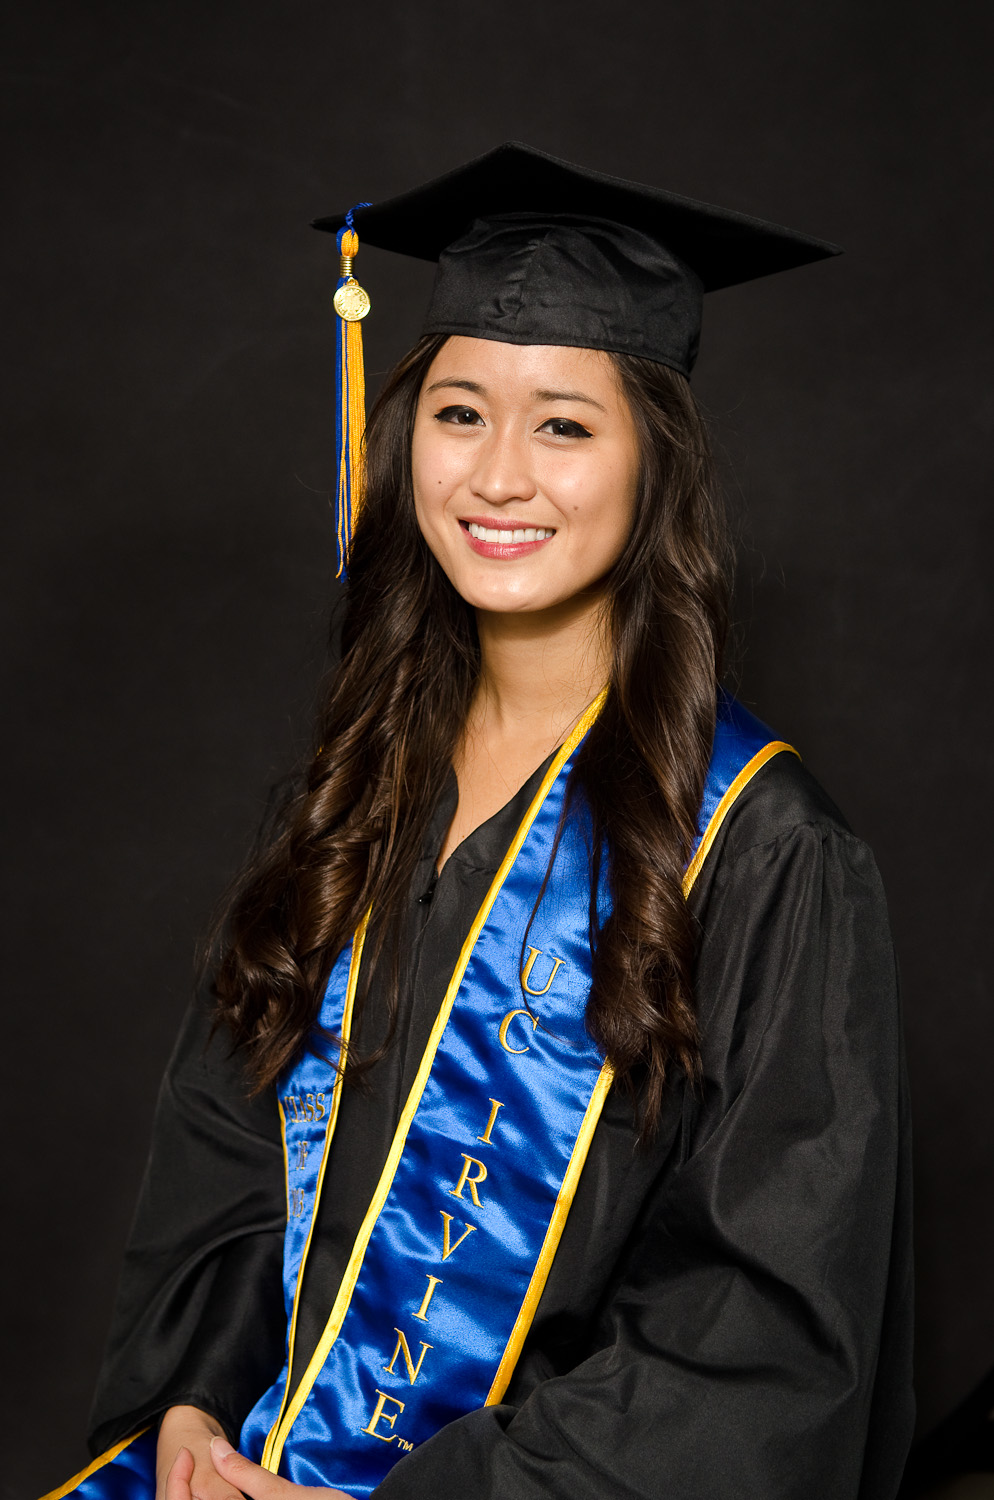 Bryan-Miraflor-Photography-Grad-Portraits-Bettina-0008.jpg